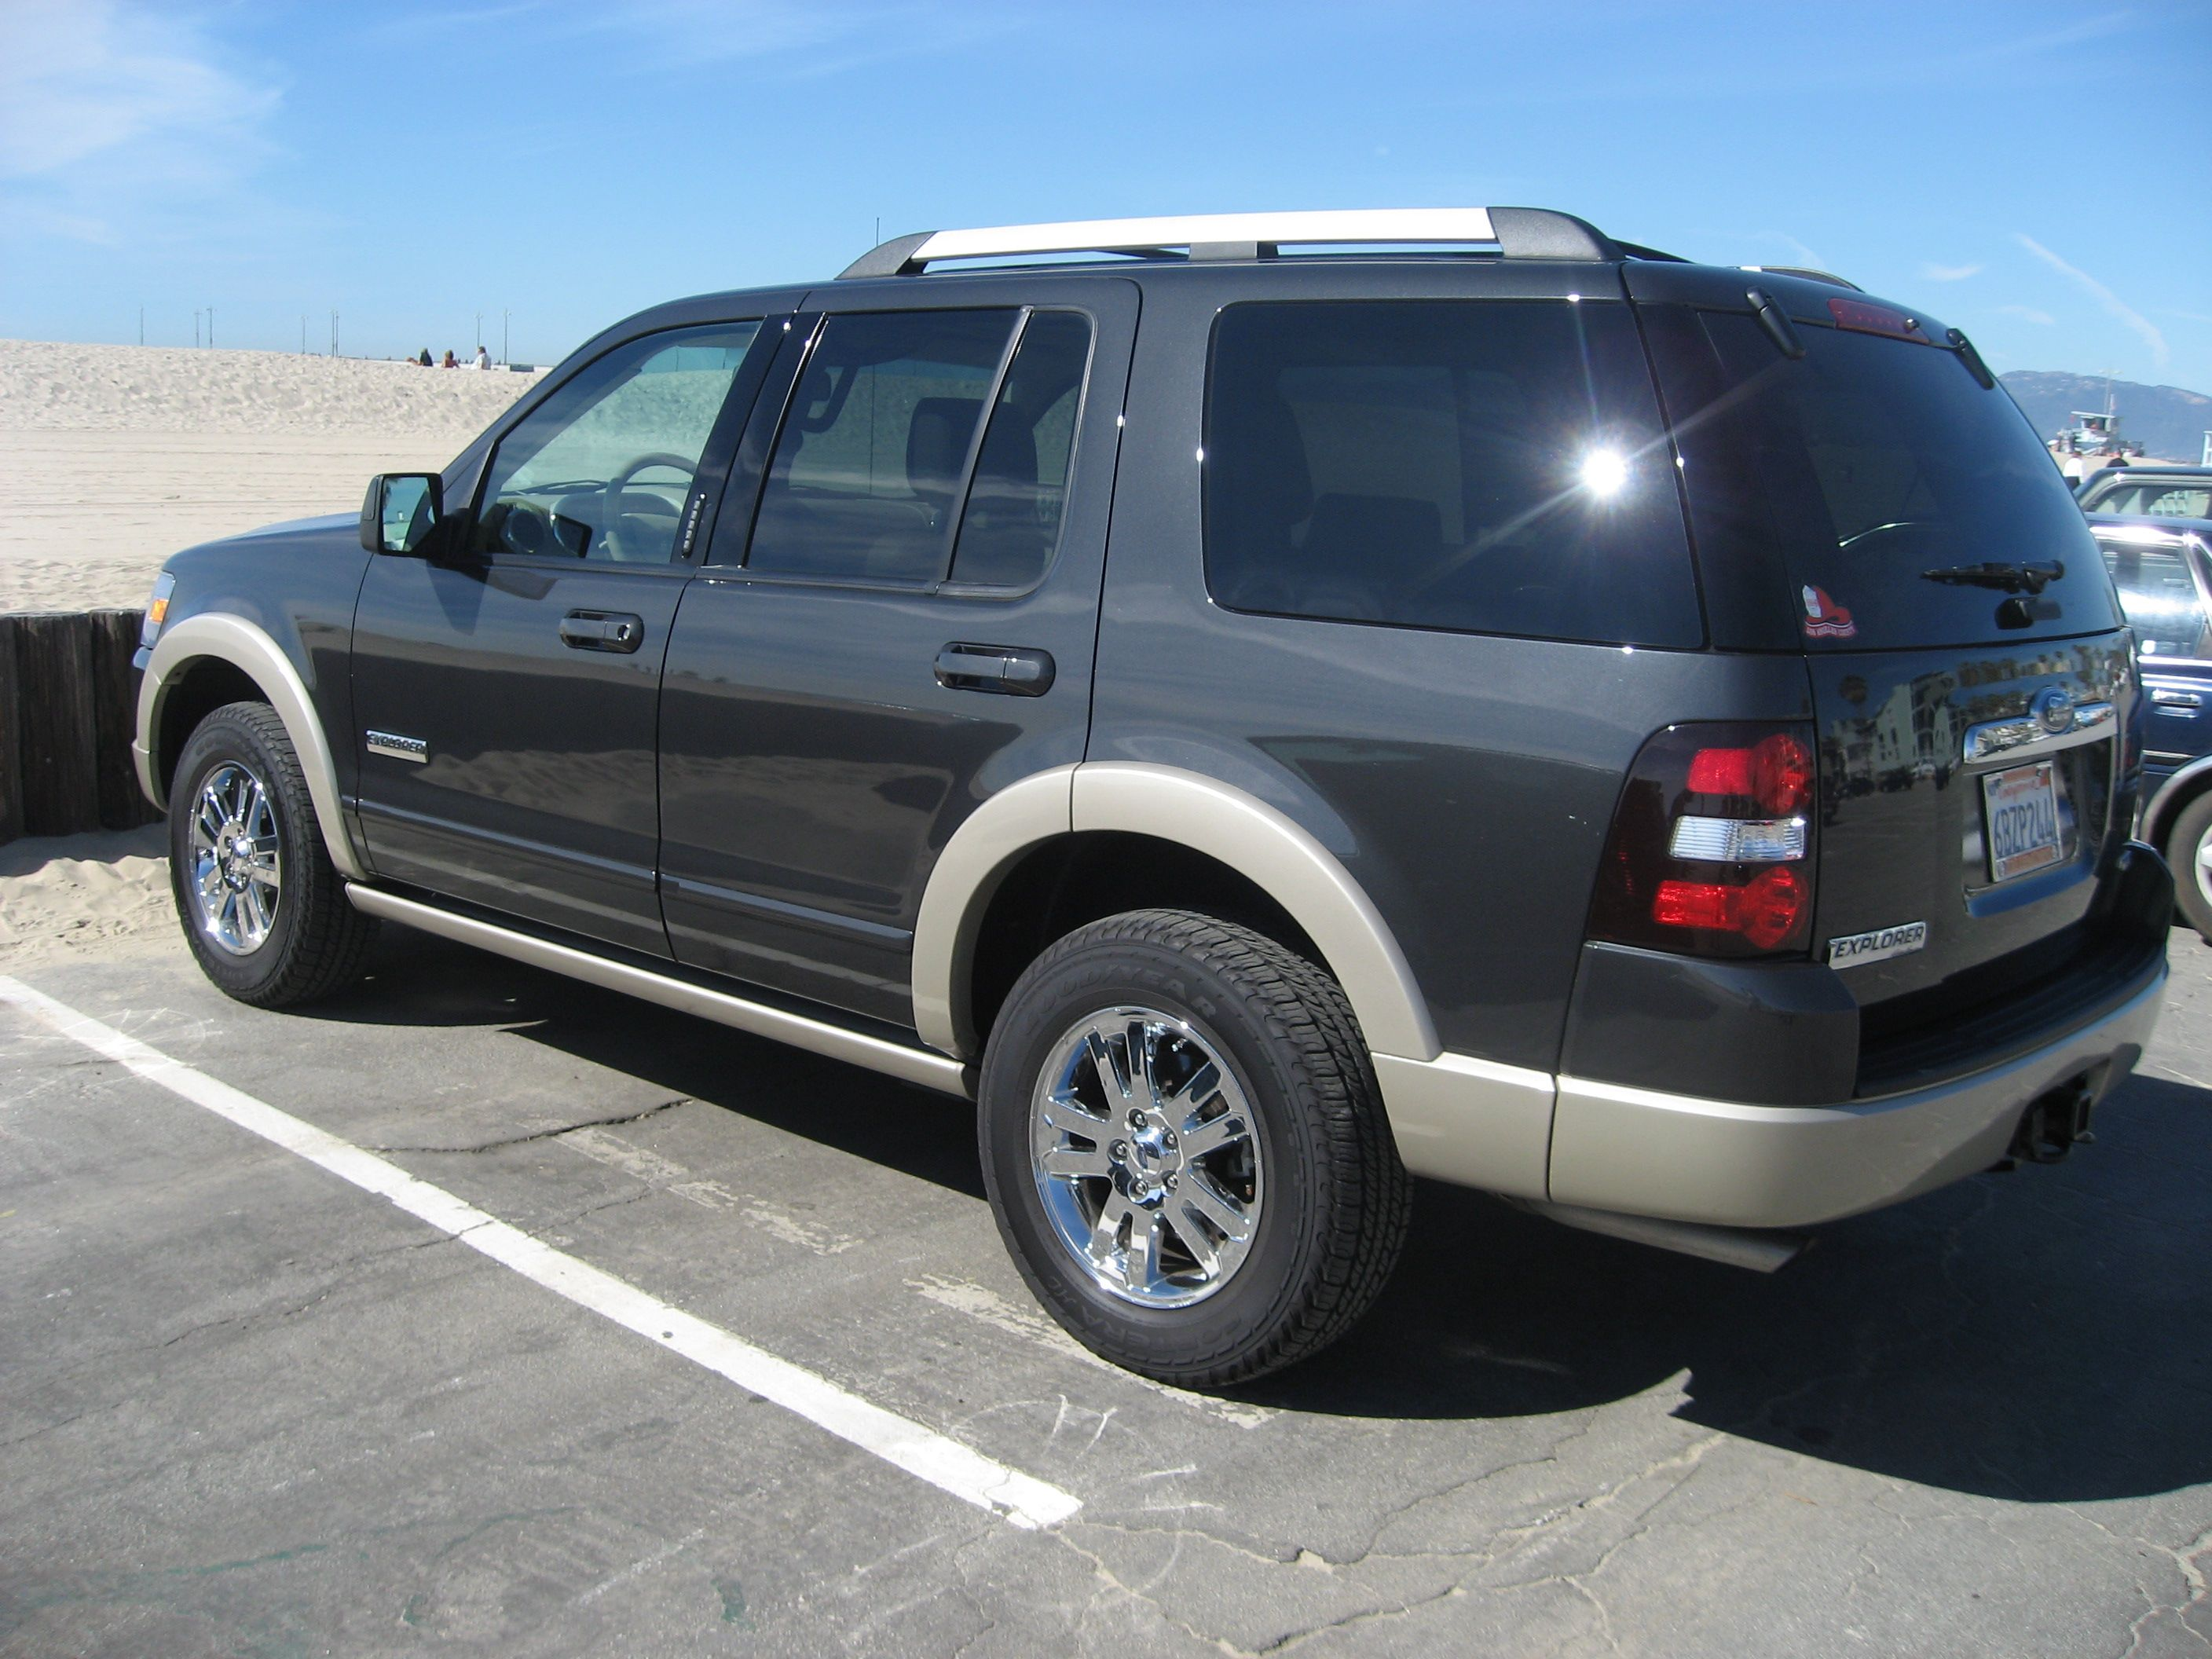 2007 Ford Explorer Ed Bauer Edition there is one at carmax in